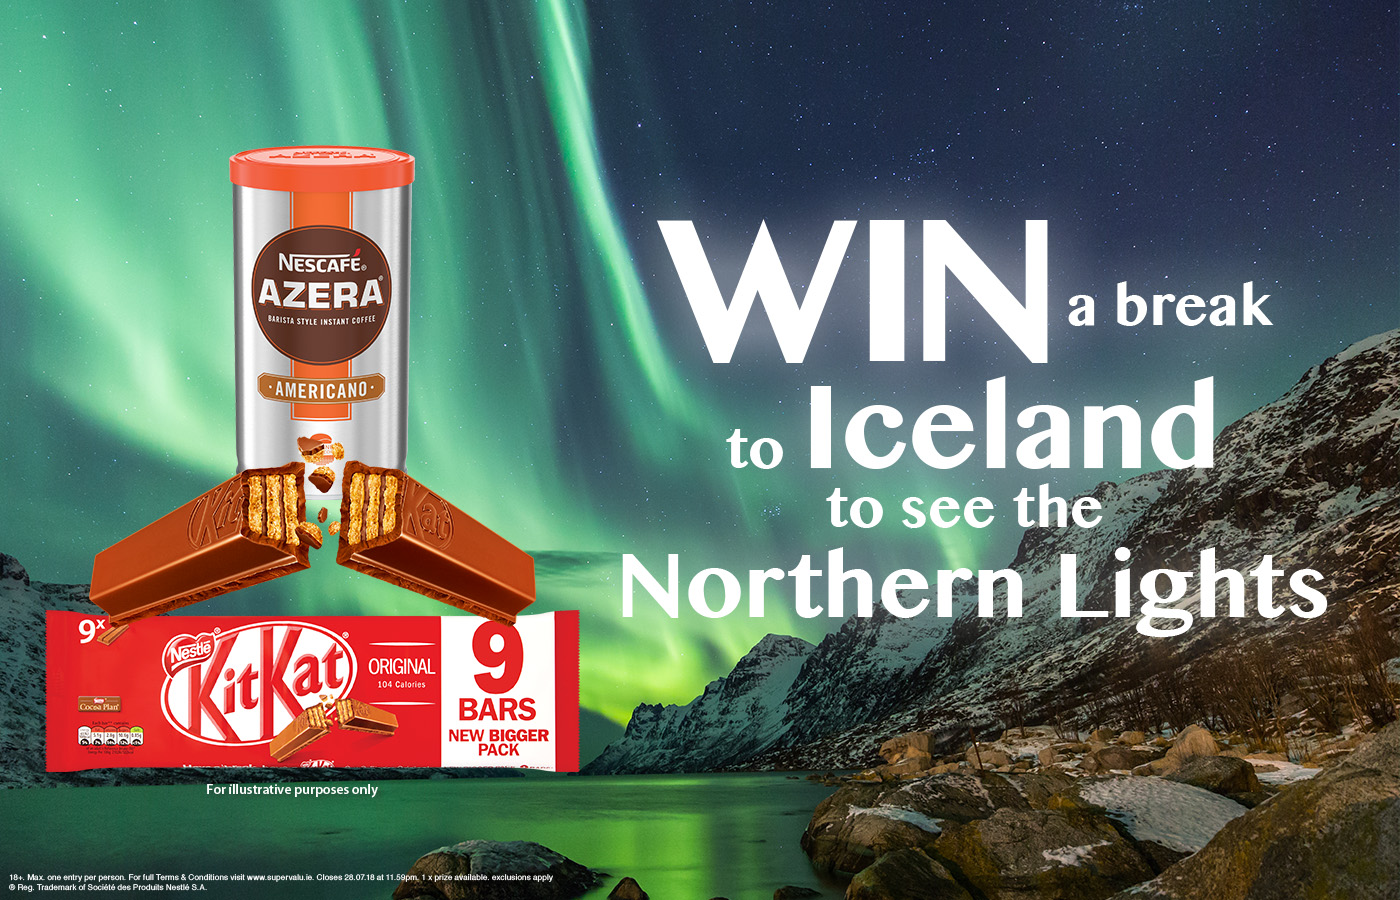 Win a break to Iceland to see the Northern Lights with Nescafé Azera